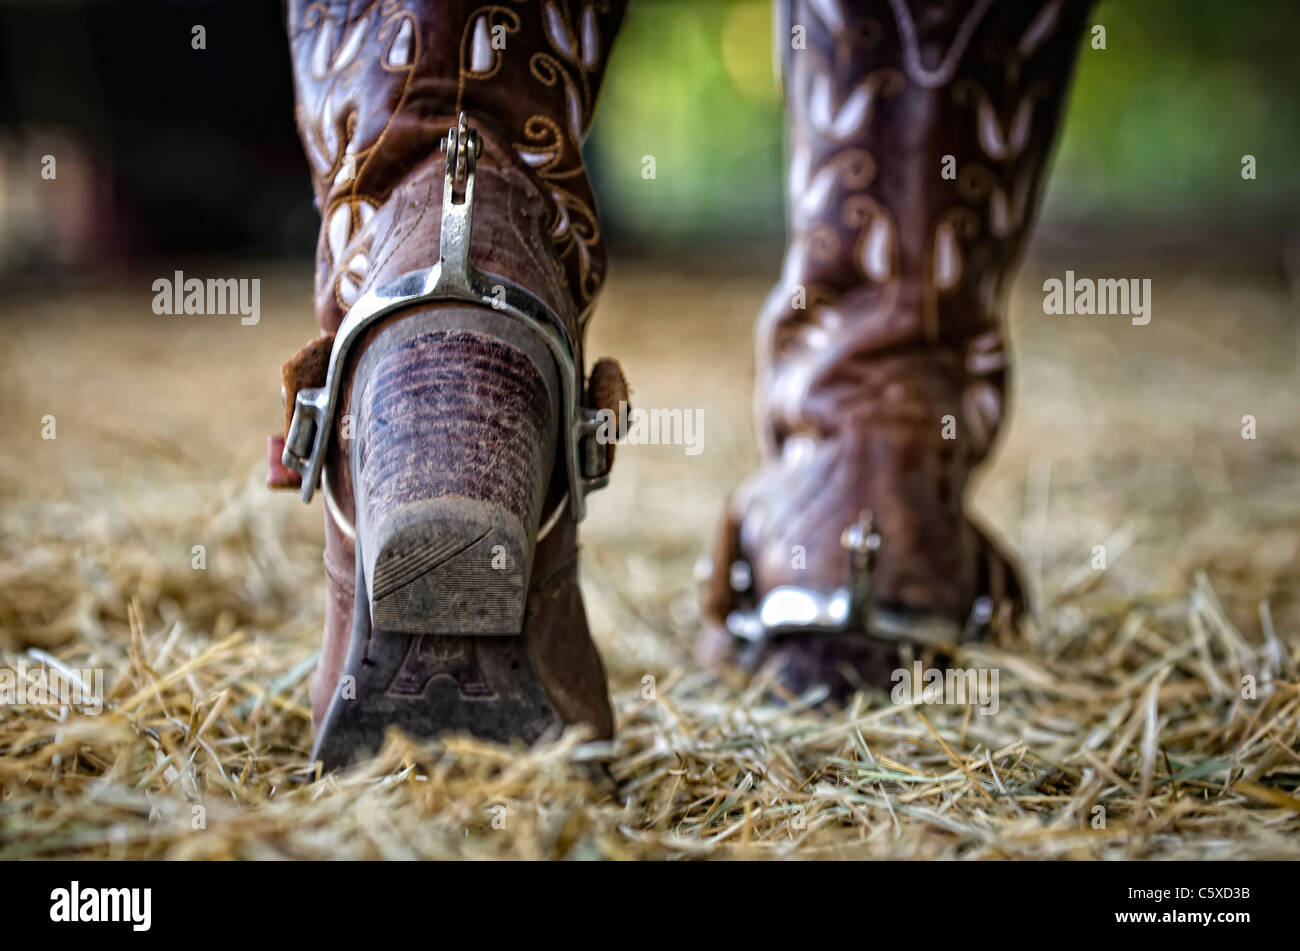 Western boots with spurs - Stock Image